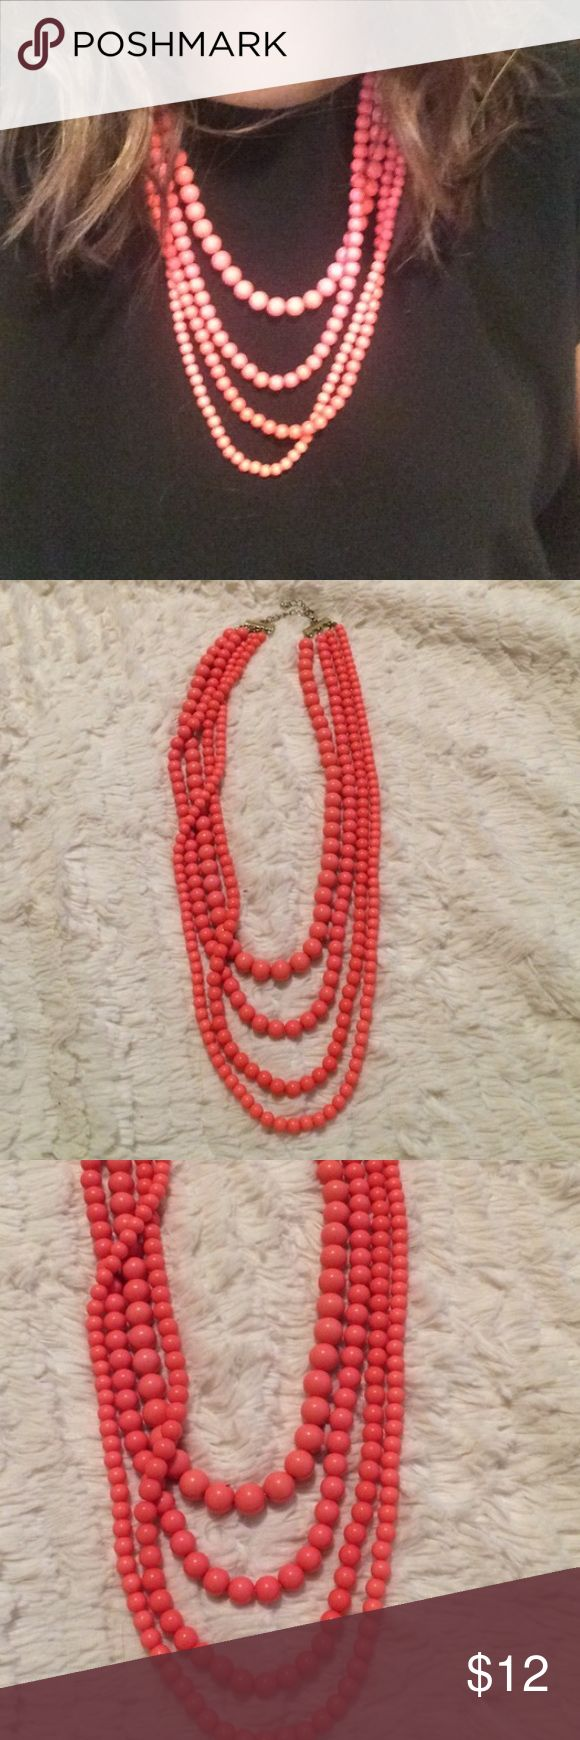 Peach/pink multi strand necklace Such a pretty necklace. Peach/pink color and has 4 strands. Jewelry Necklaces